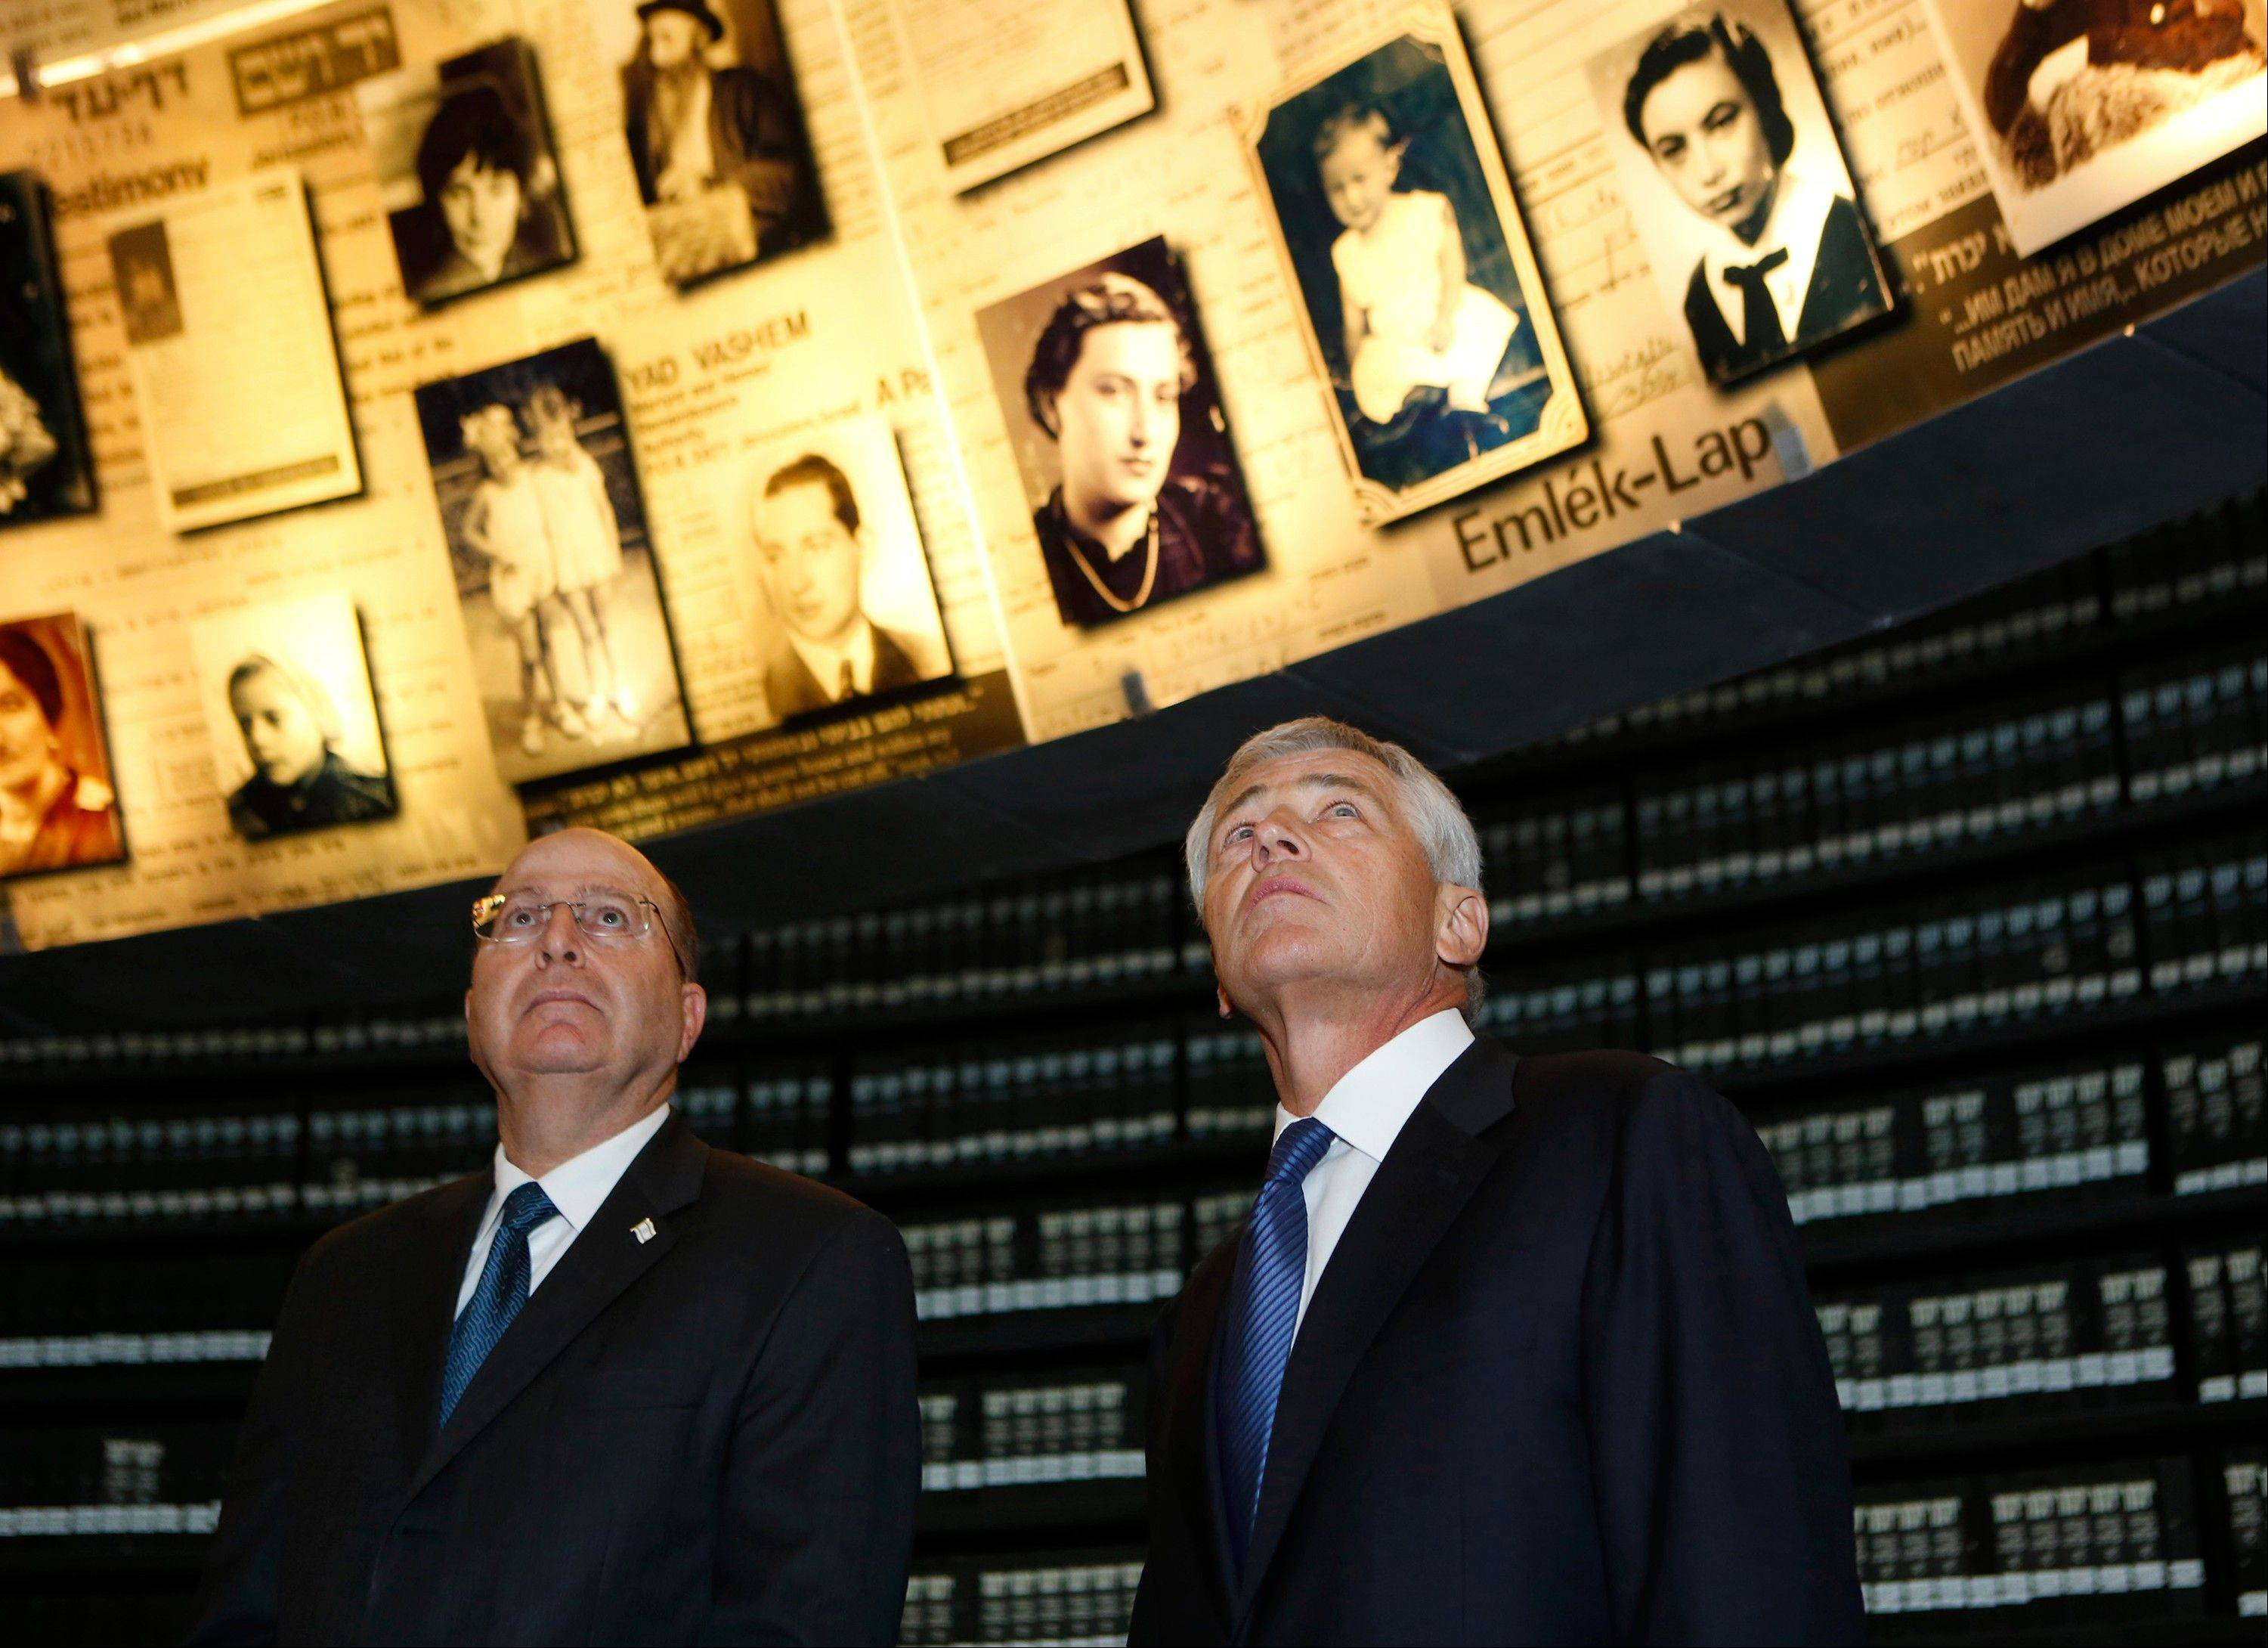 U.S. Defense Secretary Chuck Hagel, right, stands next to Israel's Defense Minister Moshe Yaalon as he looks at pictures of Jews killed in the Holocaust during a Sunday visit to the Hall of Names at Yad Vashem's Holocaust History Museum in Jerusalem.